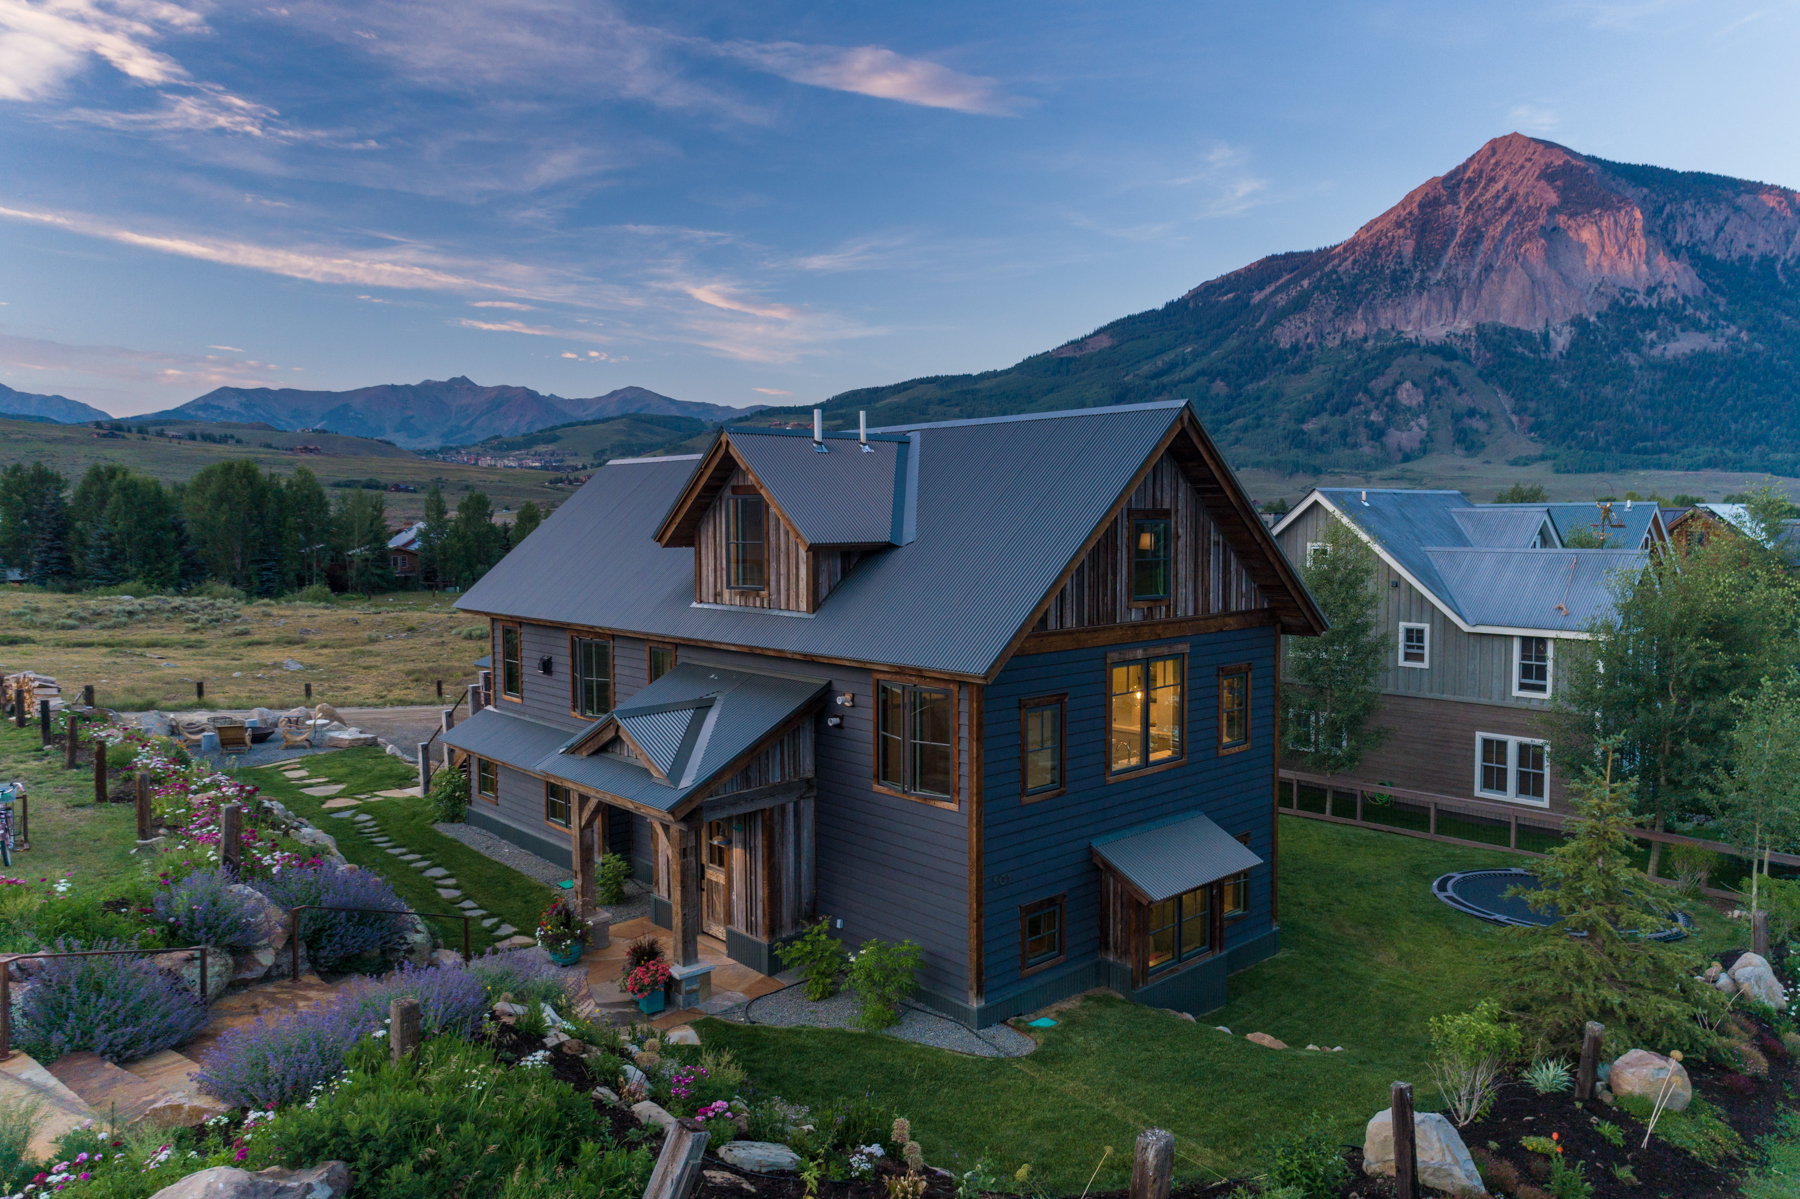 Single Family Home for Active at 501 Gothic Avenue 501 Gothic Avenue Crested Butte, Colorado 81224 United States